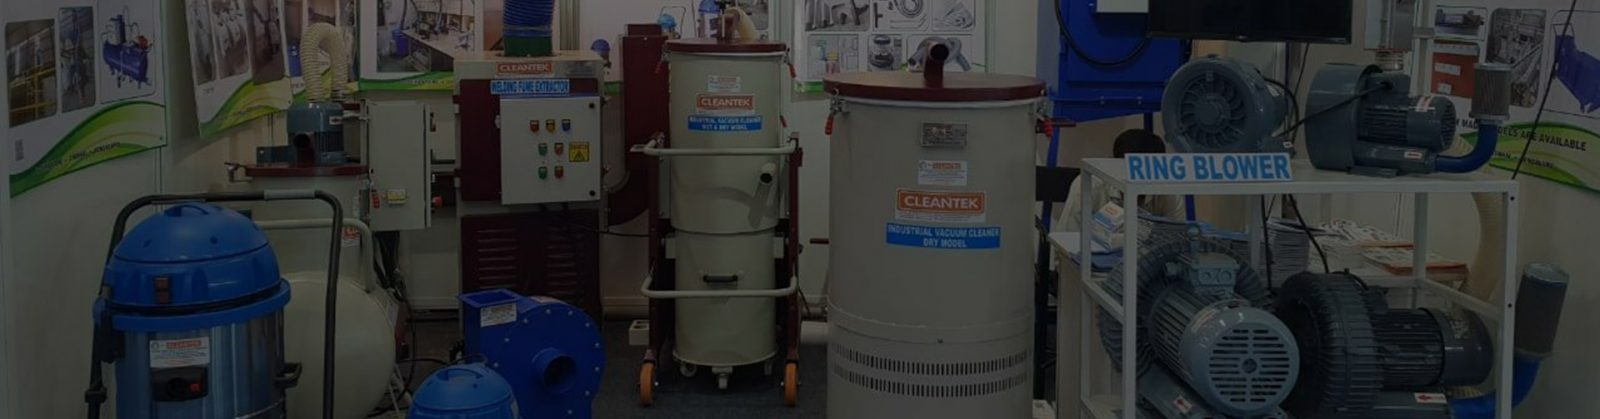 Industrial vacuum cleaning,Dust Collection,Mist Collection and air Filtration